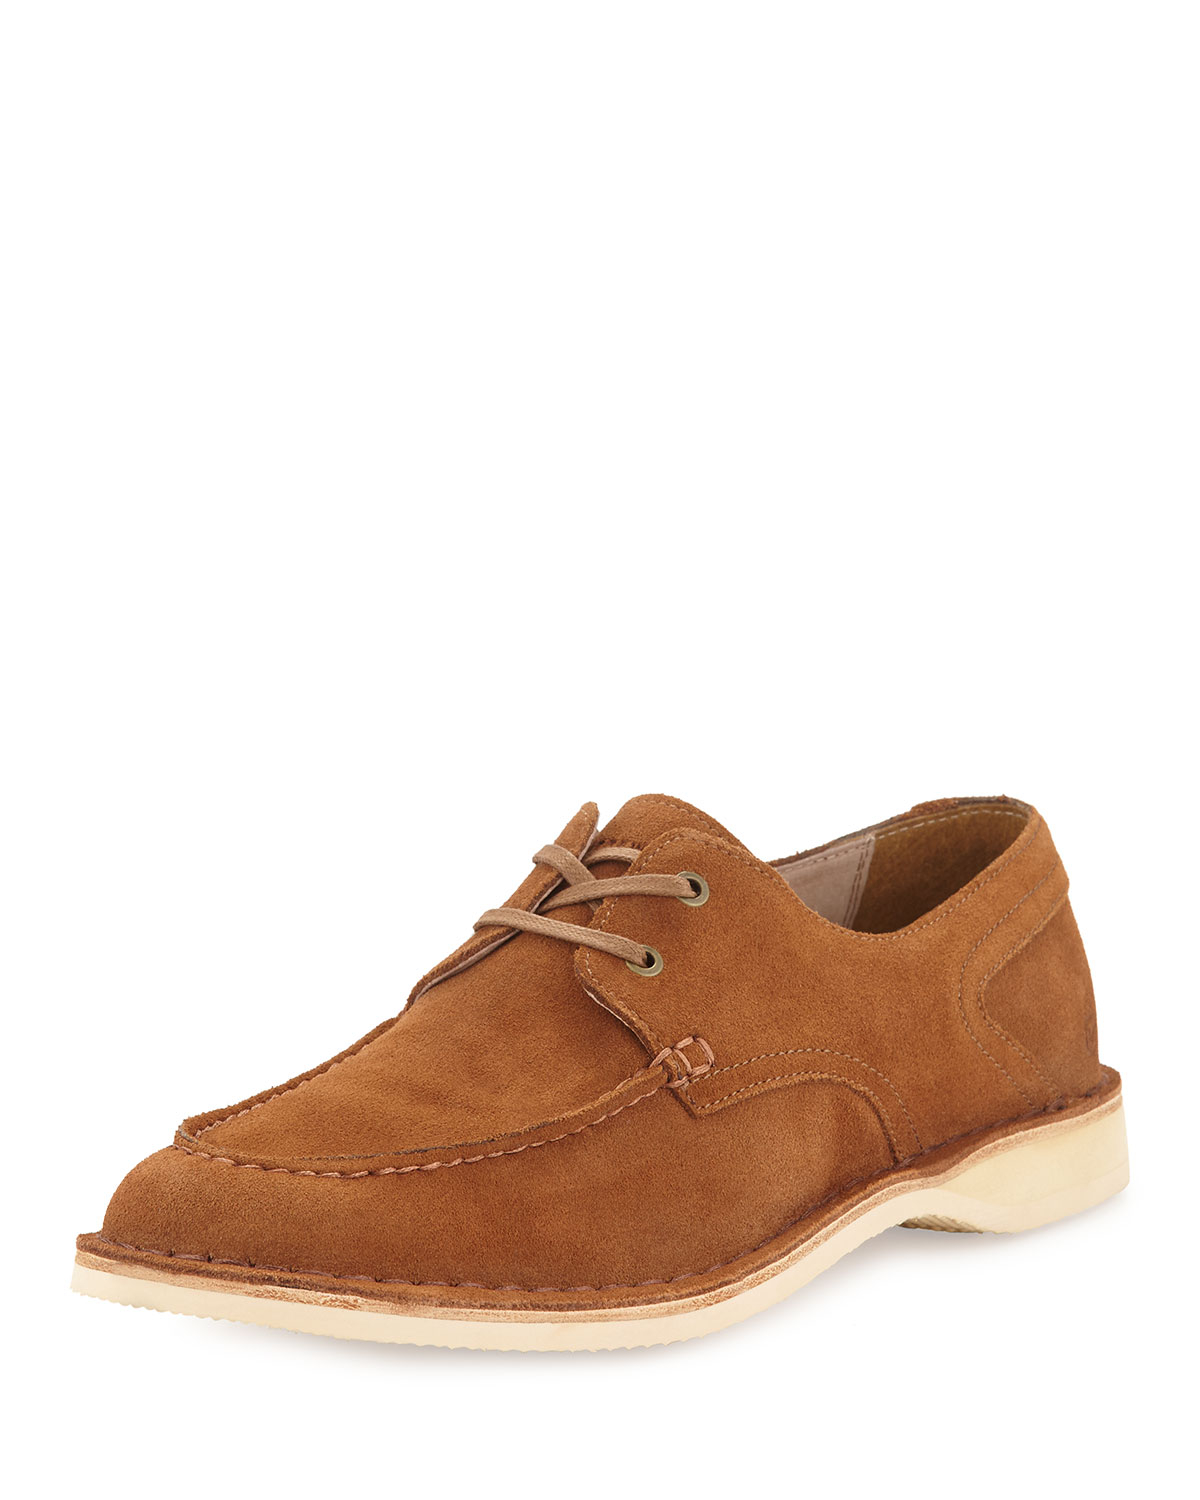 Lyst Andrew Marc Dorchester Suede Lace Up Oxford In Brown